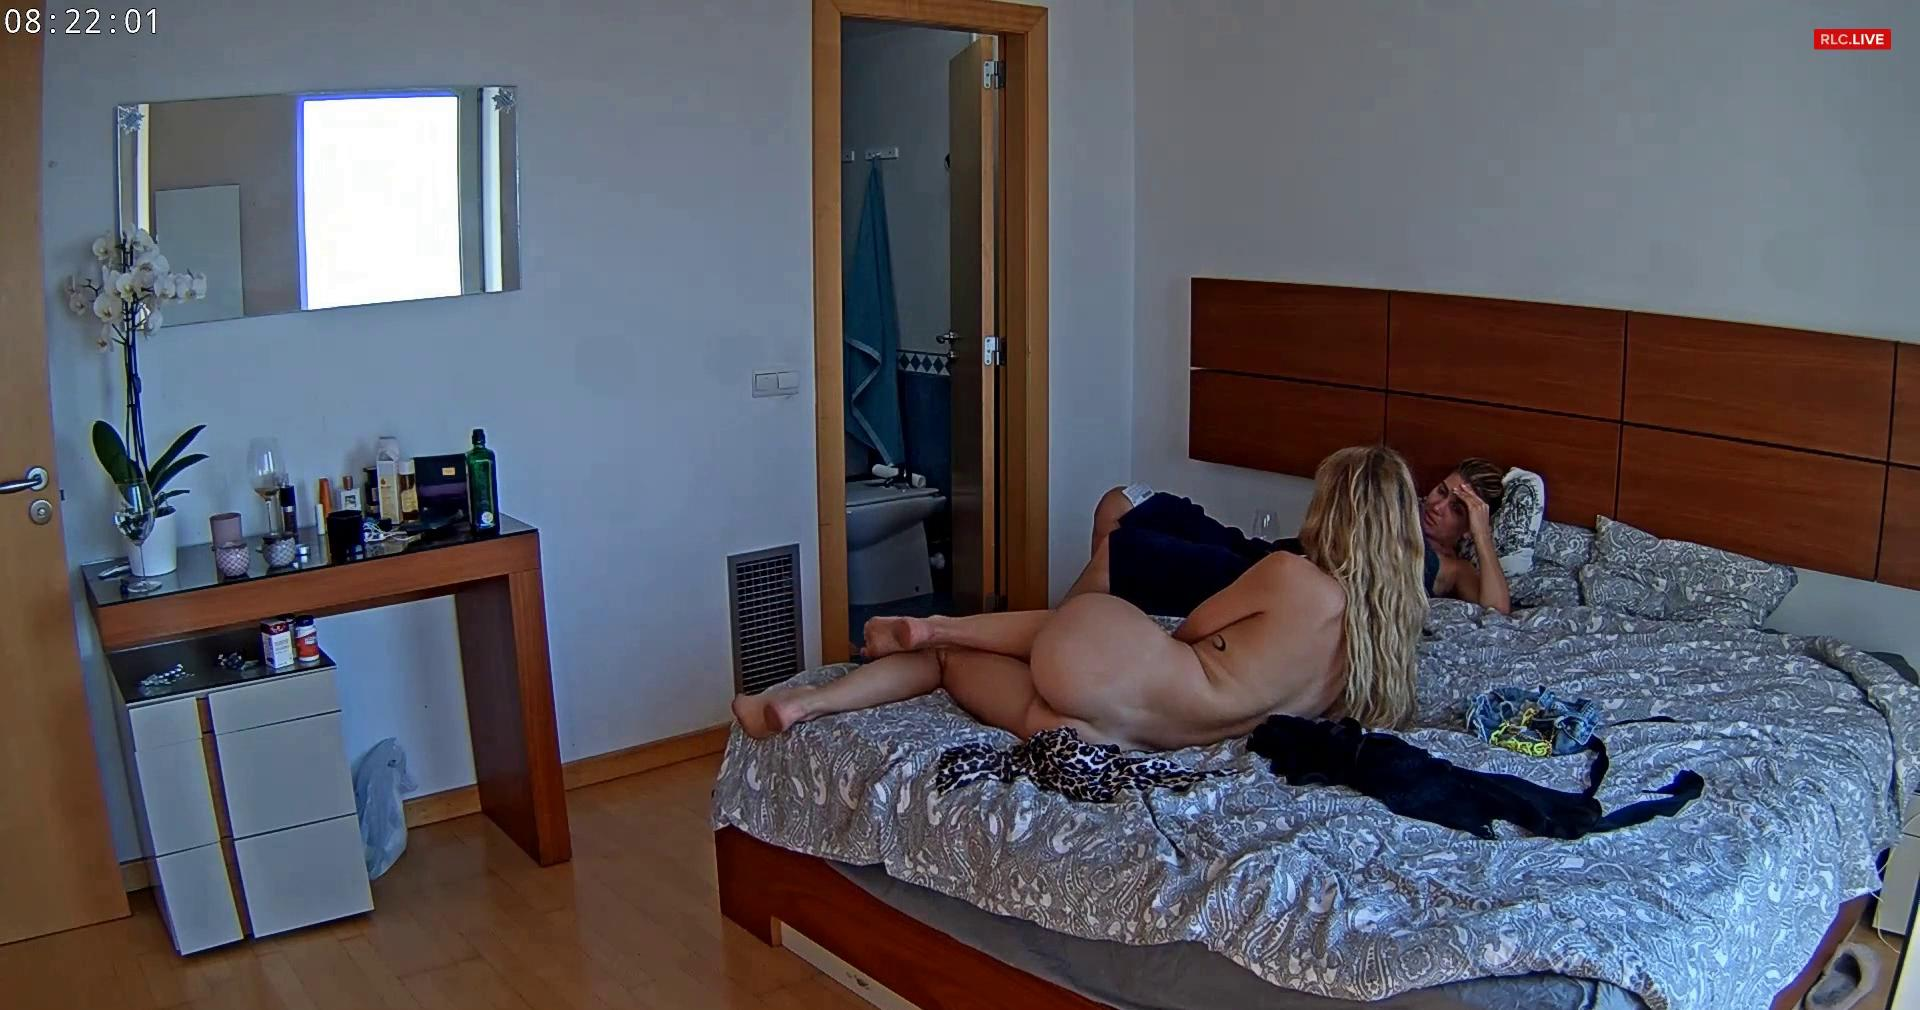 Reallifecam Gina and Stella and guest girl relax time and talking 28 07 2021